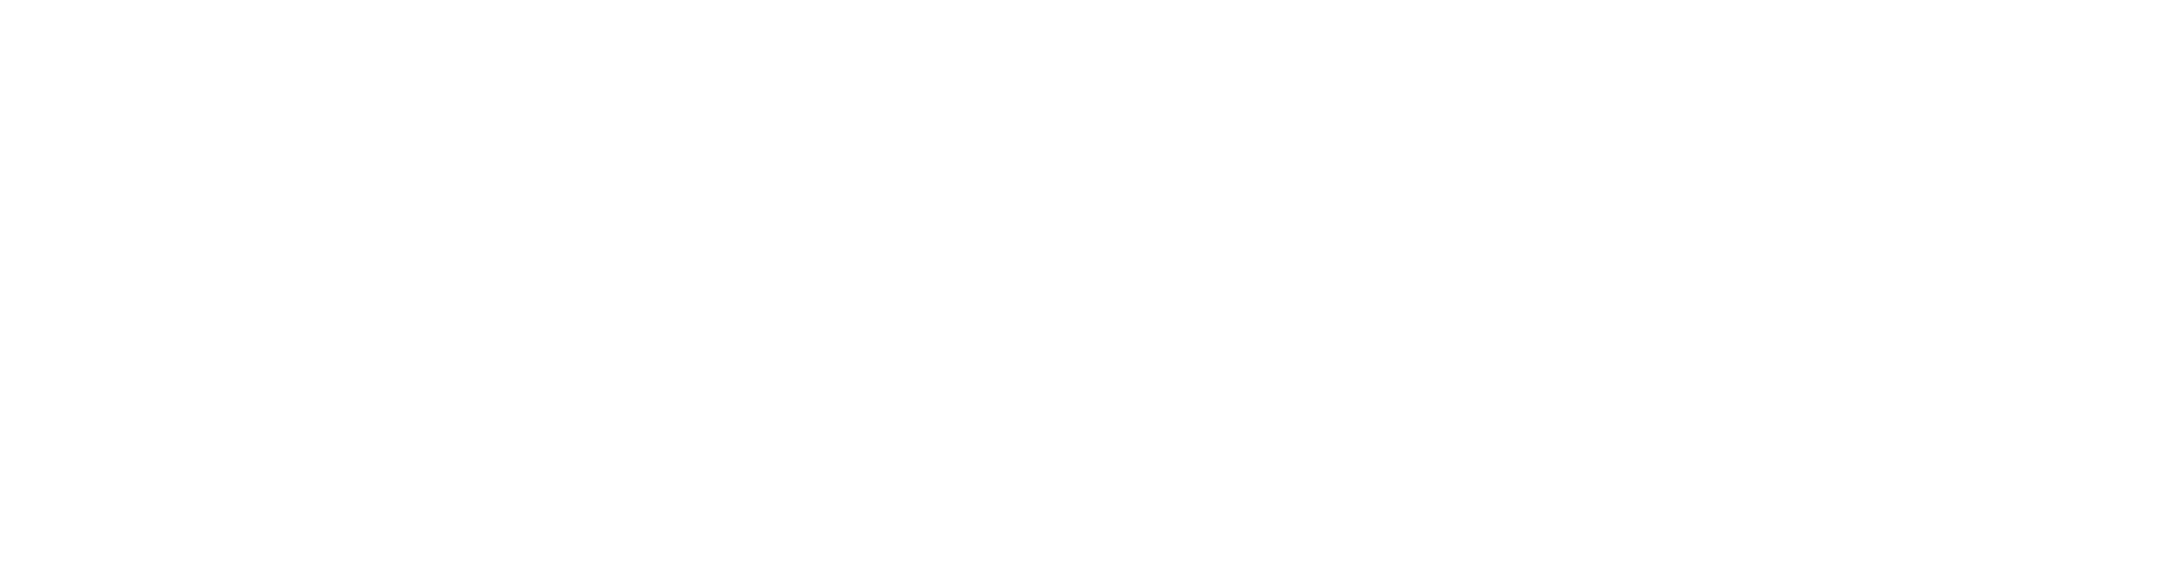 Ucotra Consulting